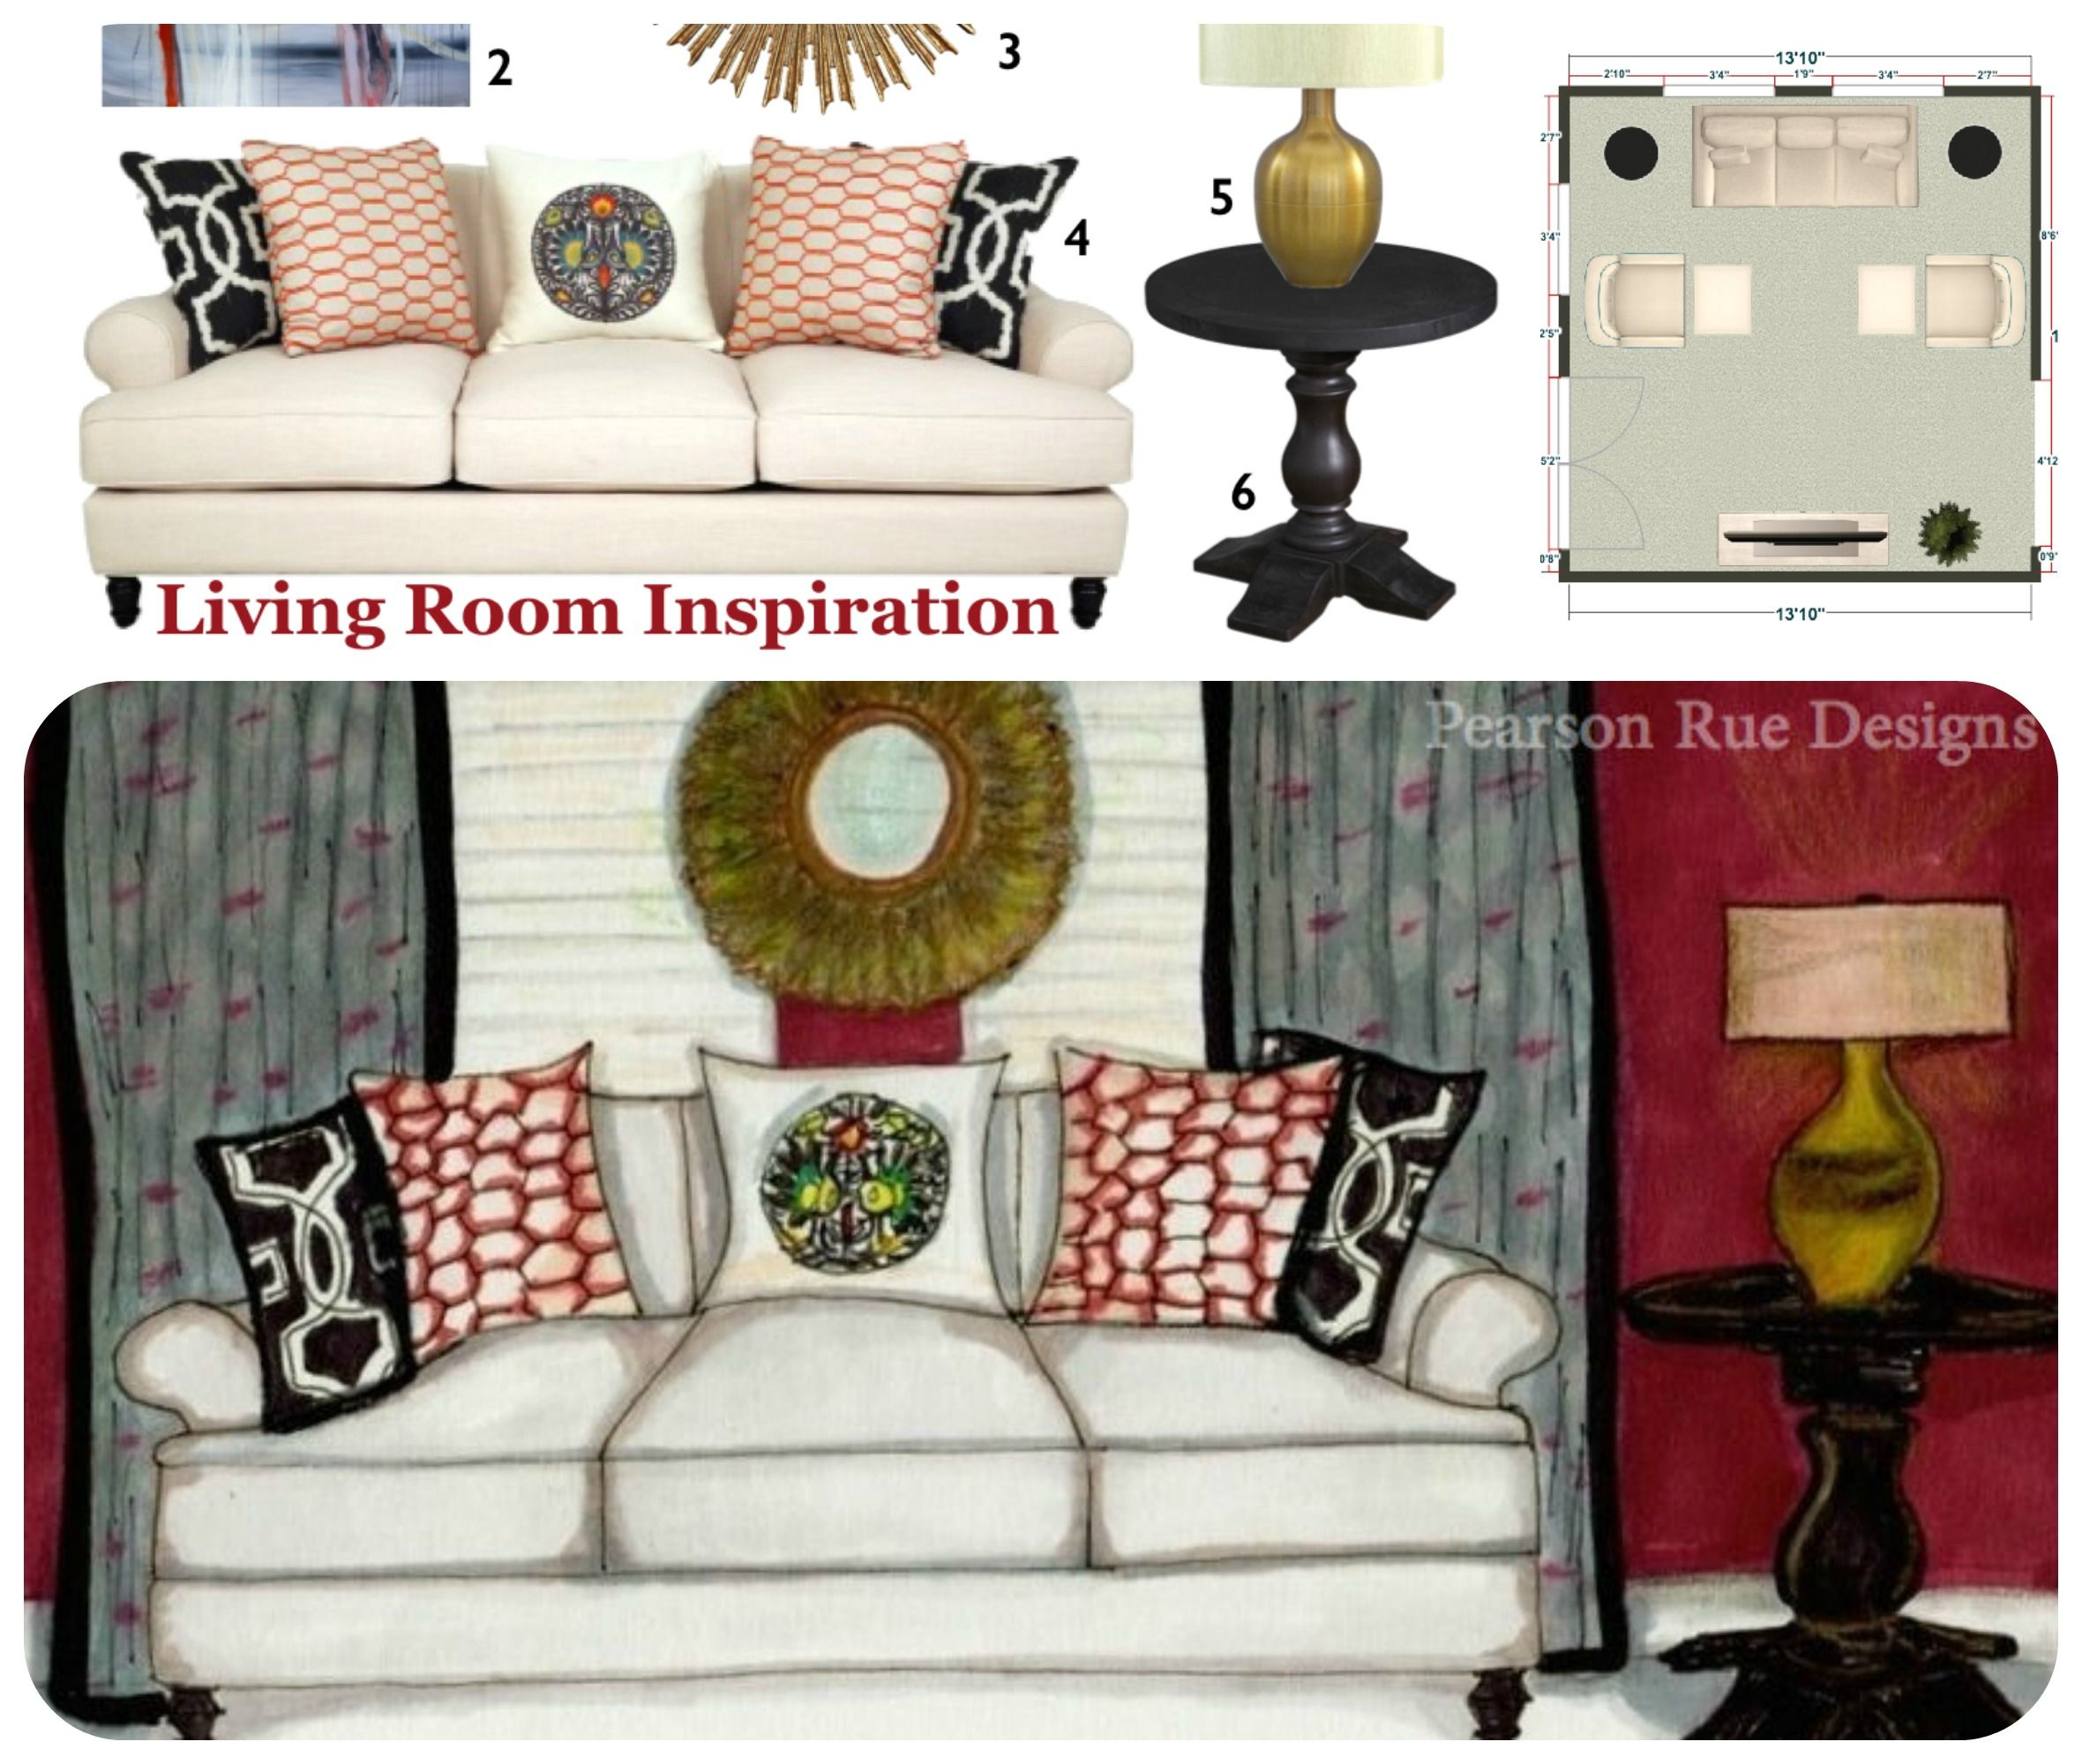 Beau Gallery Furniture Contest/Inspiration Board With Floor Plan And Sources  {skiptomyrue.com}